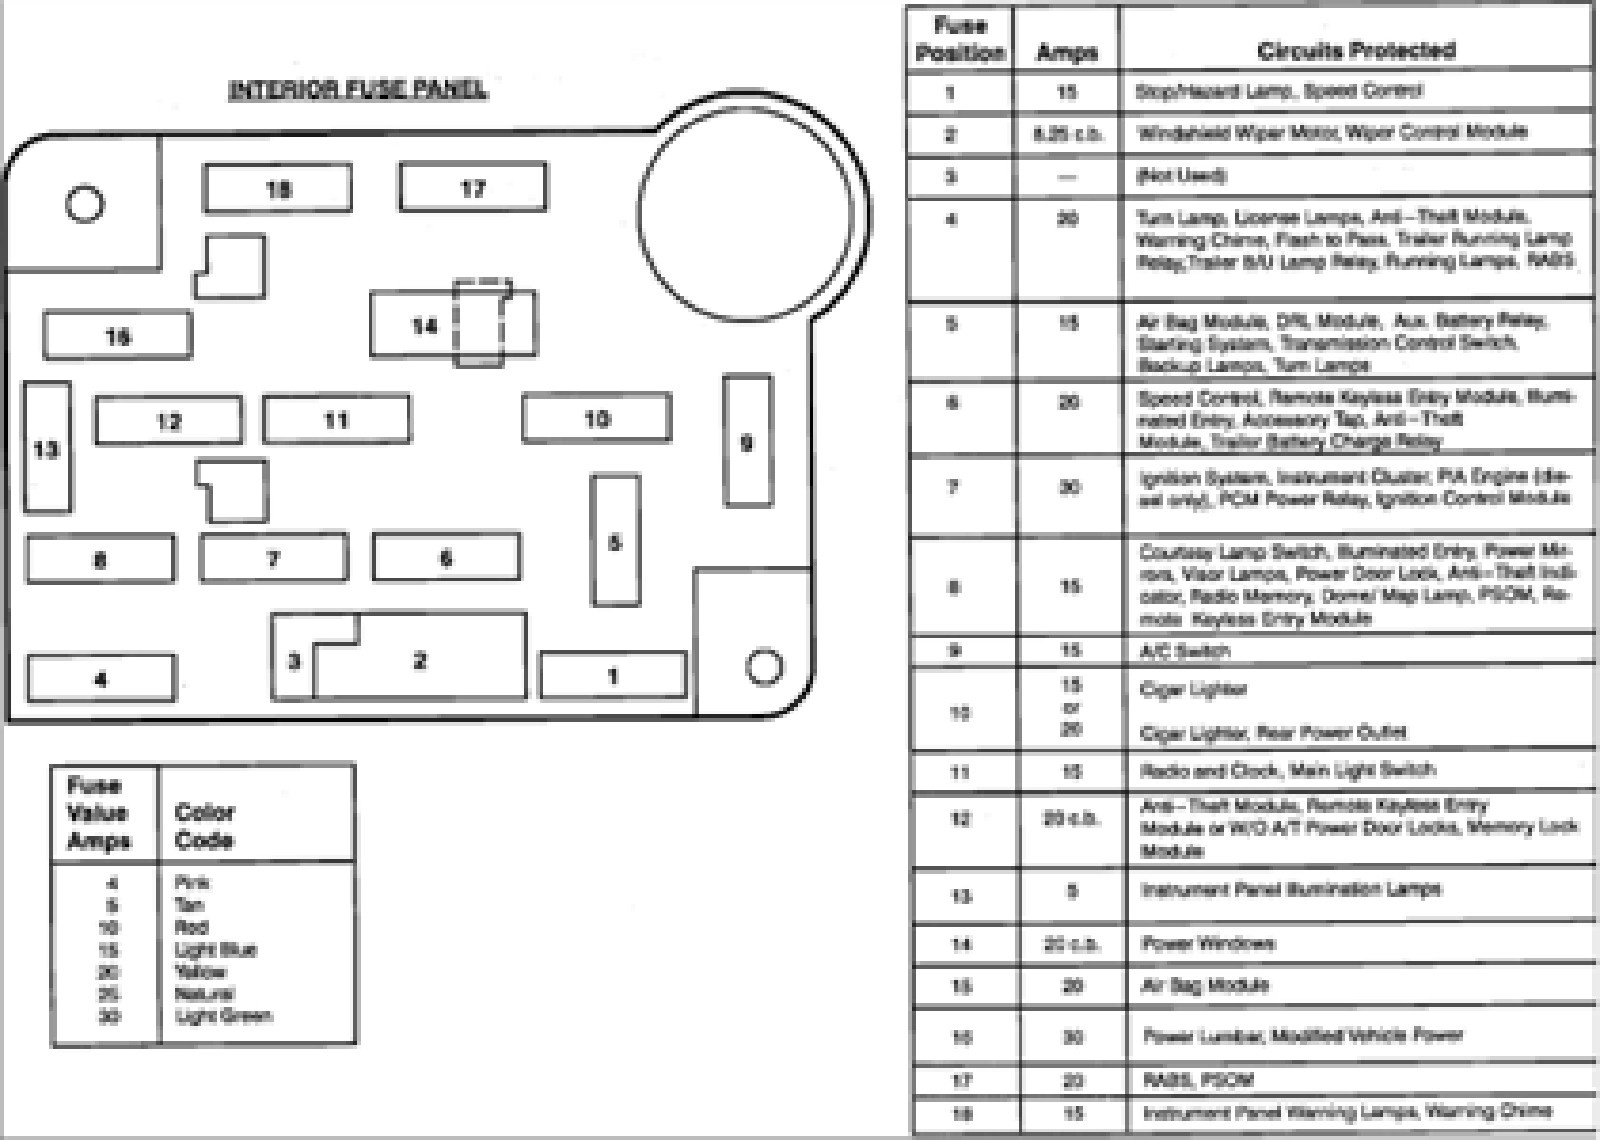 pic 8862473225641007897 1600x1200 1989 ford ranger fuse box diagram 1994 ford ranger fuse box layout 1997 f350 fuse box diagram under the hood at gsmportal.co